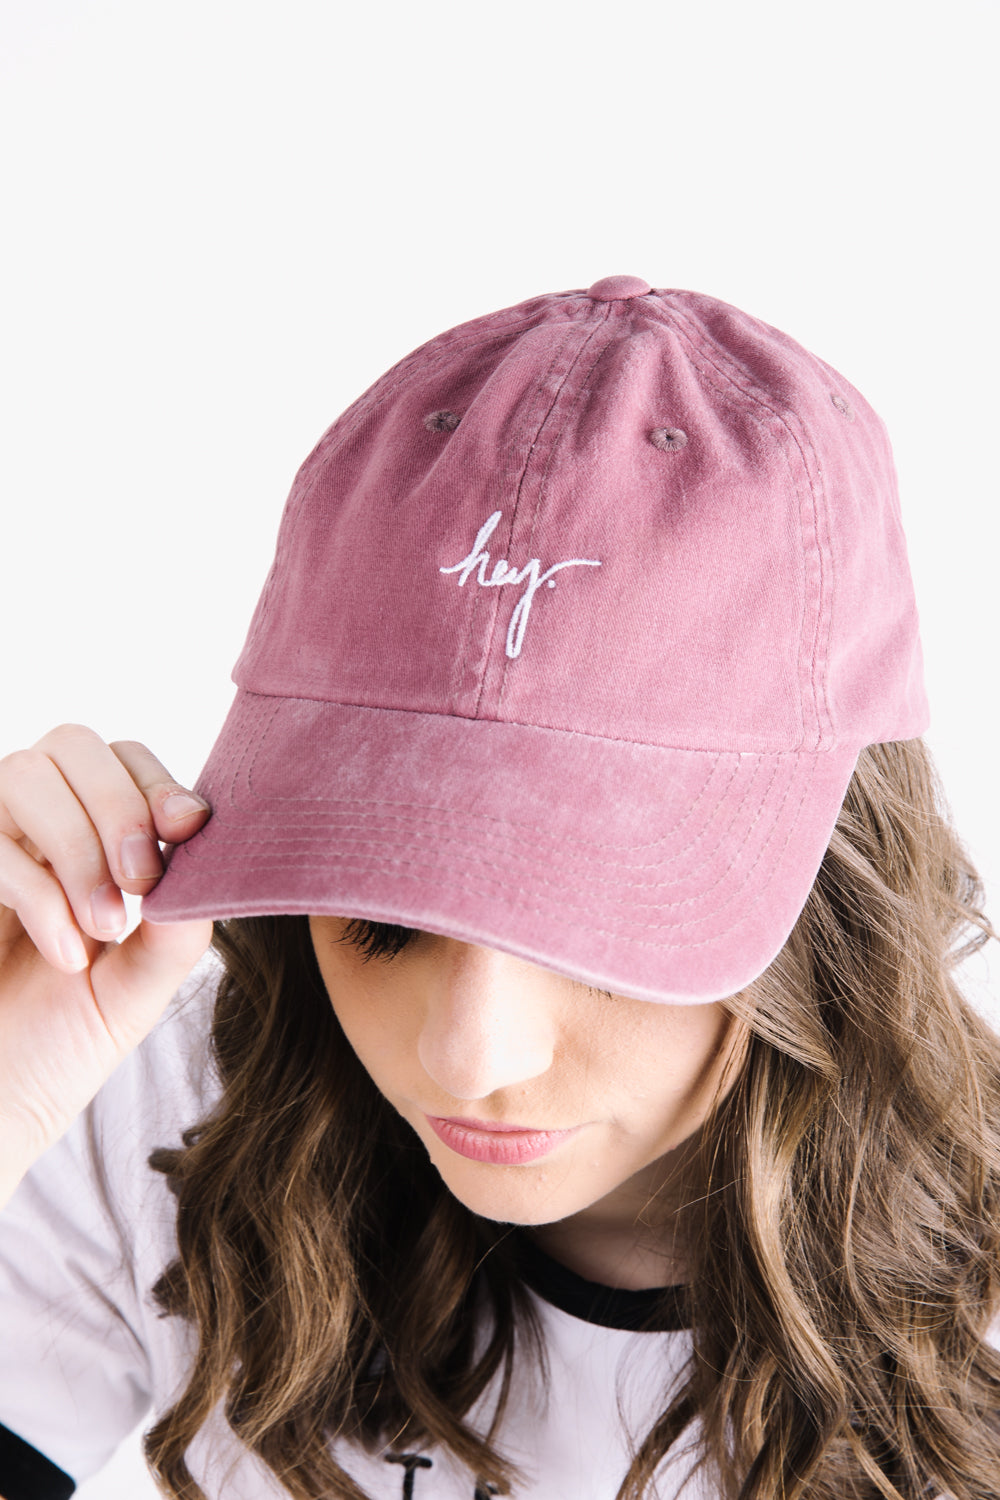 Piper & Scoot: The hey. Cap in Faded Burgundy